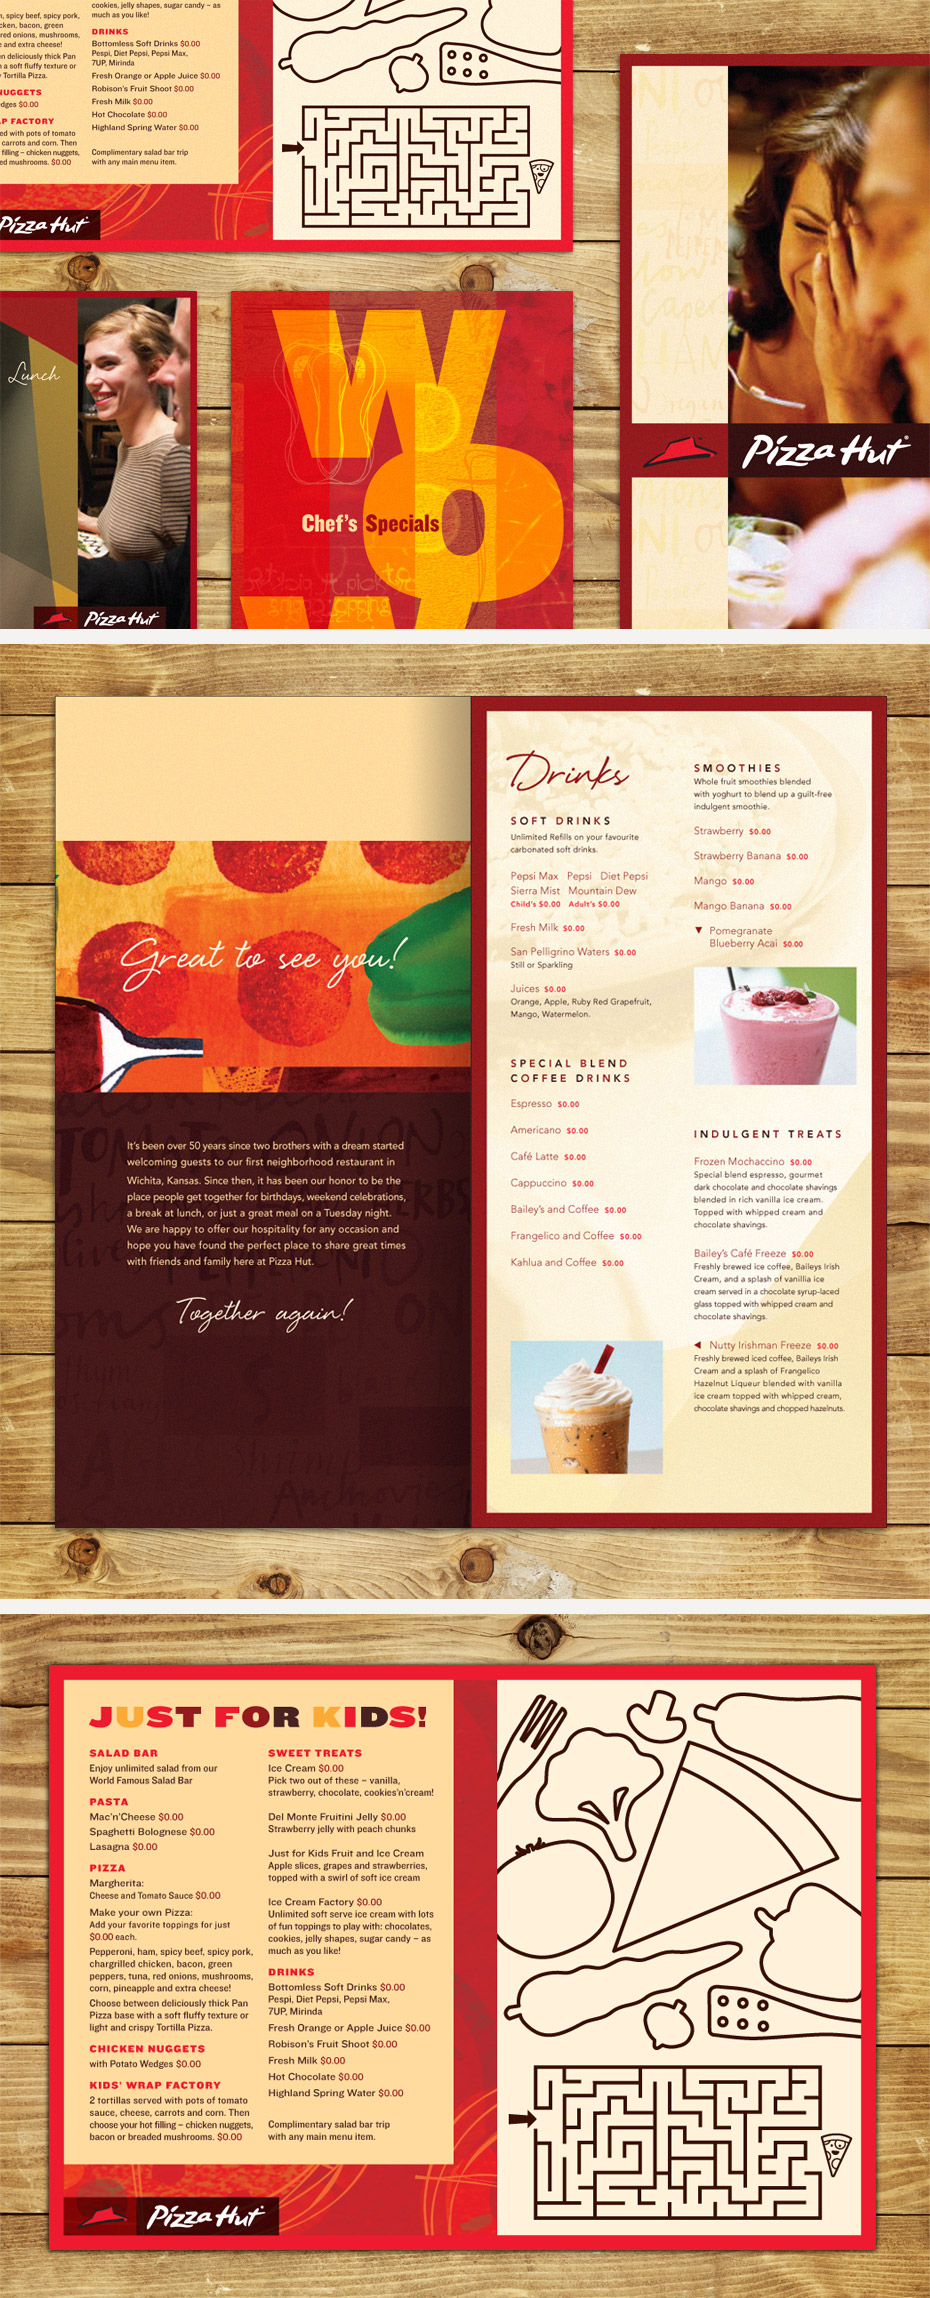 Pizza Hut Menu Cover, Drink Menu & Kids Menu